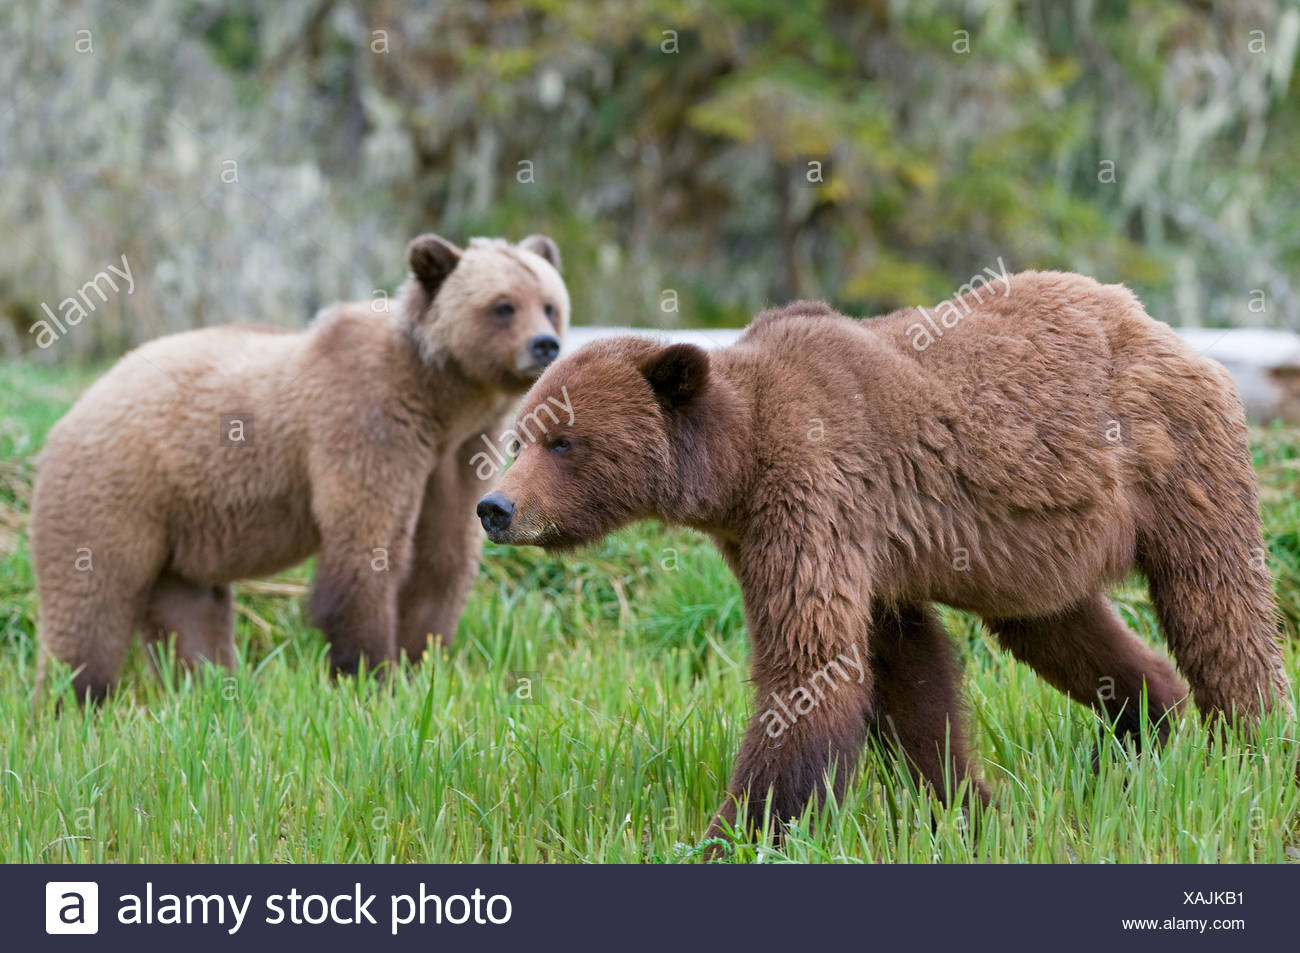 Male and female Grizzly Bear (Ursus arctos horribilis) during mating season at Khutzeymateen Grizzly Bear Sanctuary British Colu - Stock Image